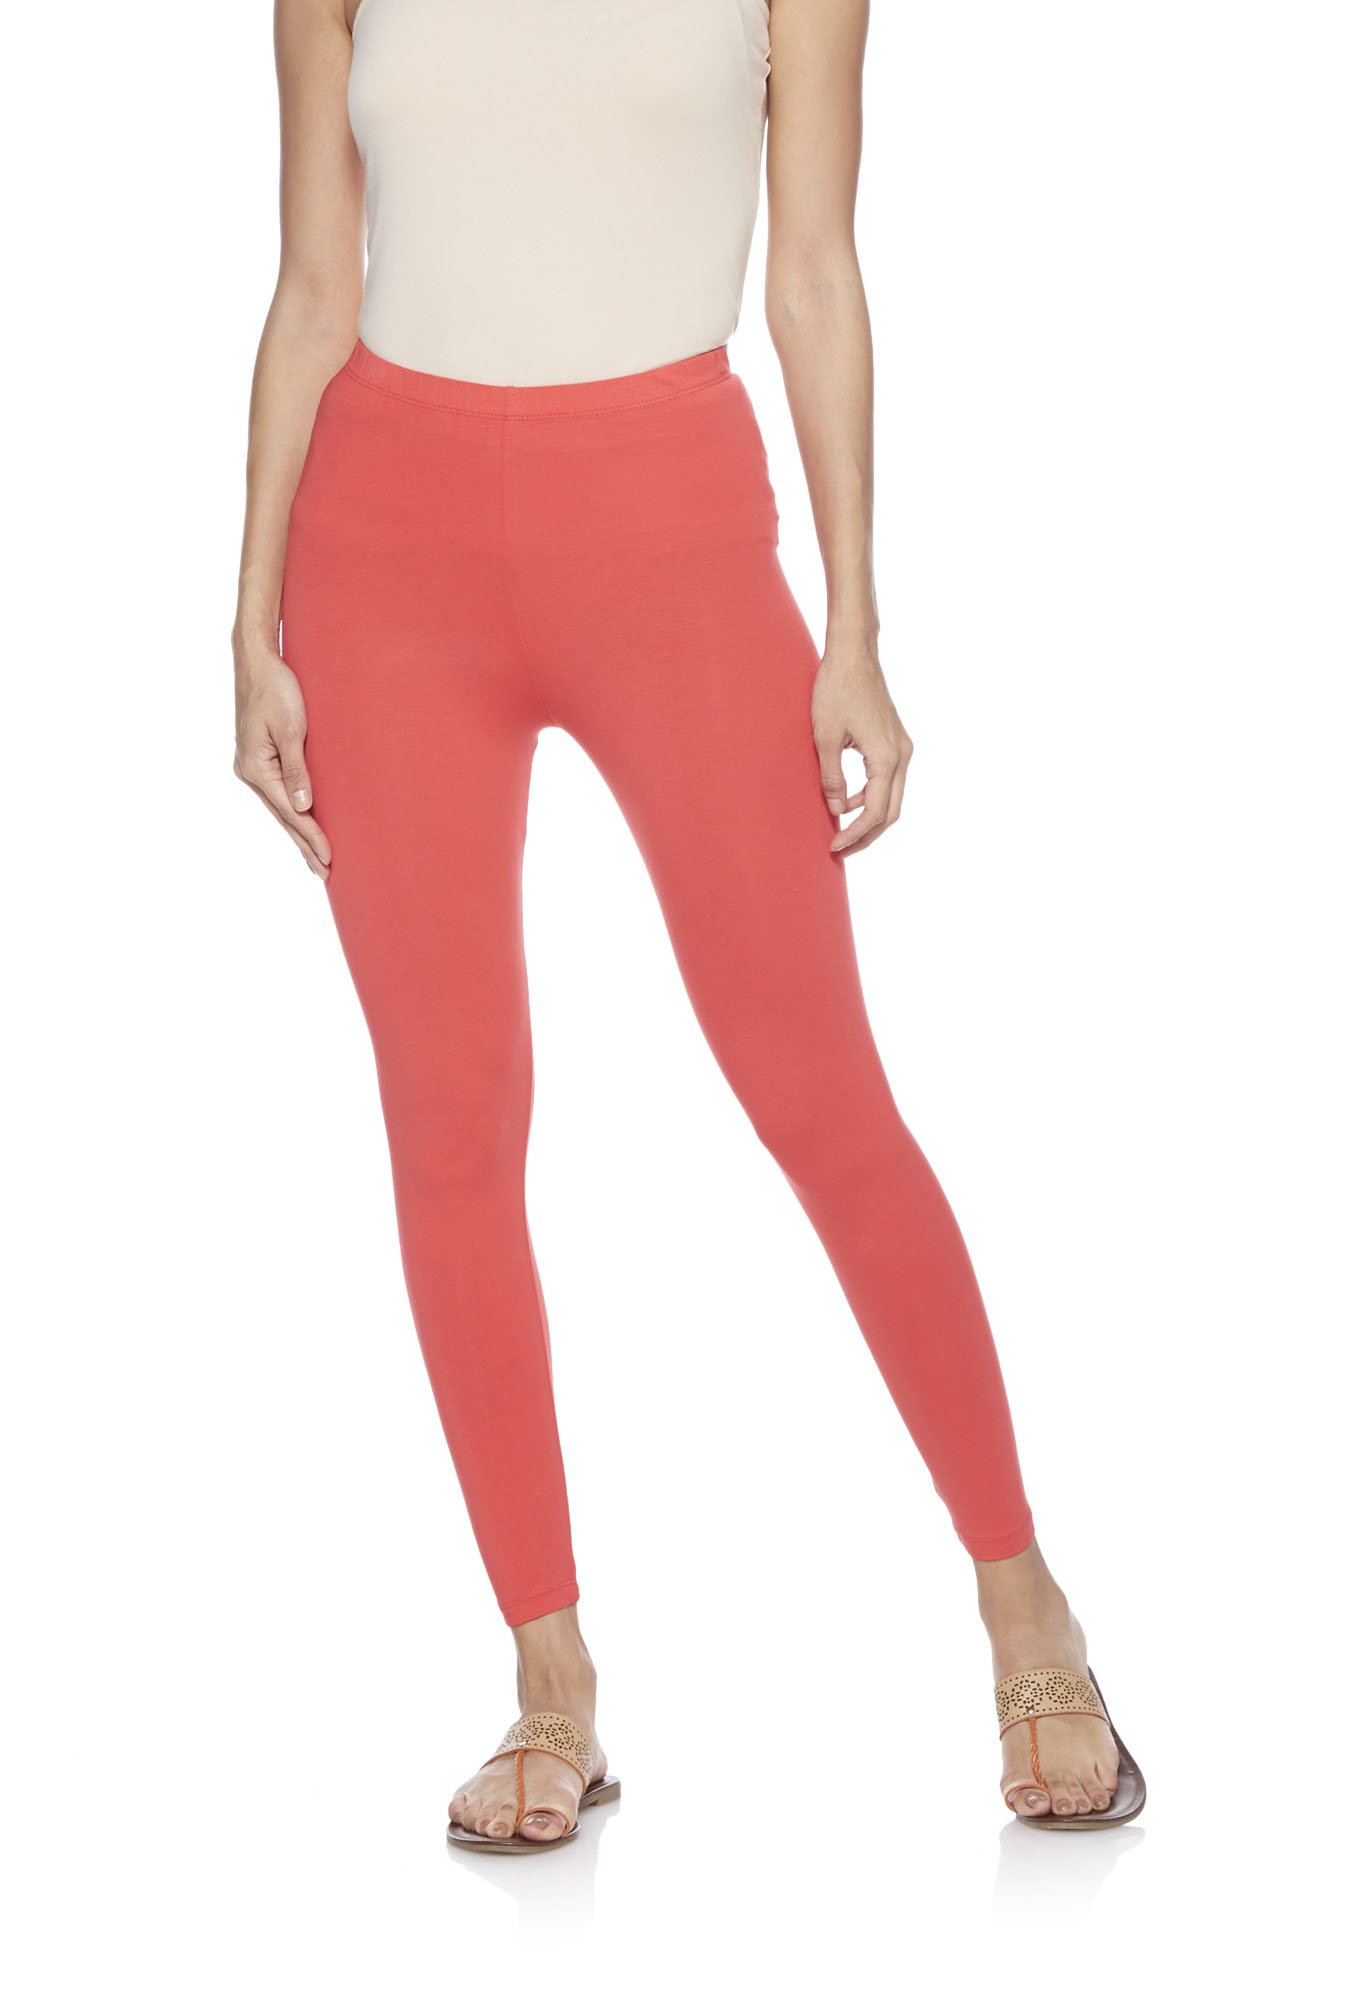 Utsa by Westside Coral Cropped Leggings